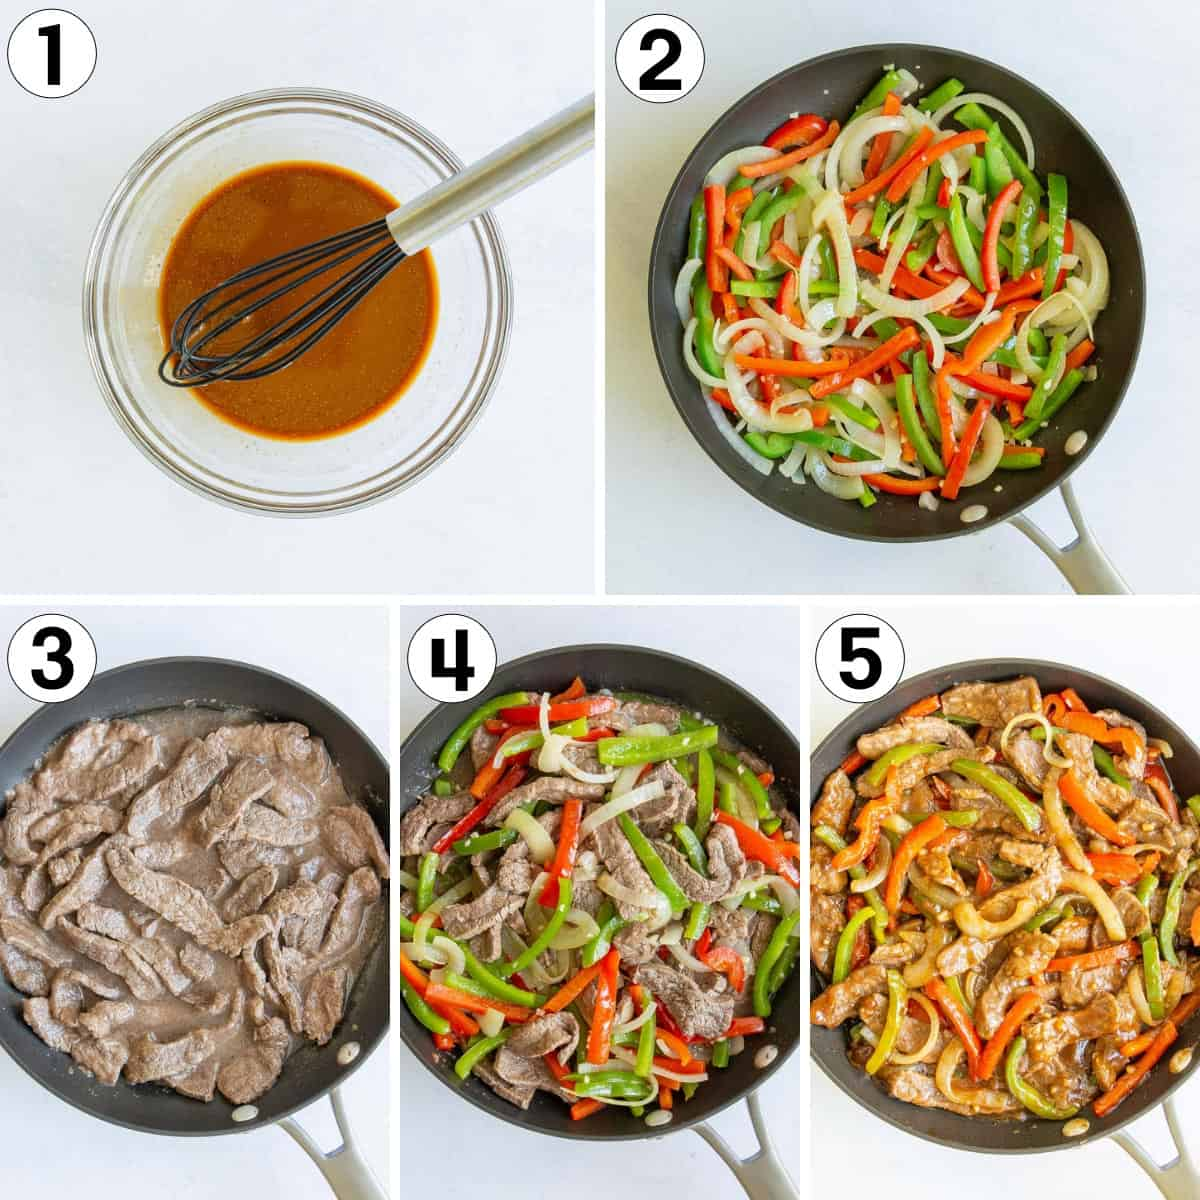 A collage of five images showing how to make Chinese pepper steak.